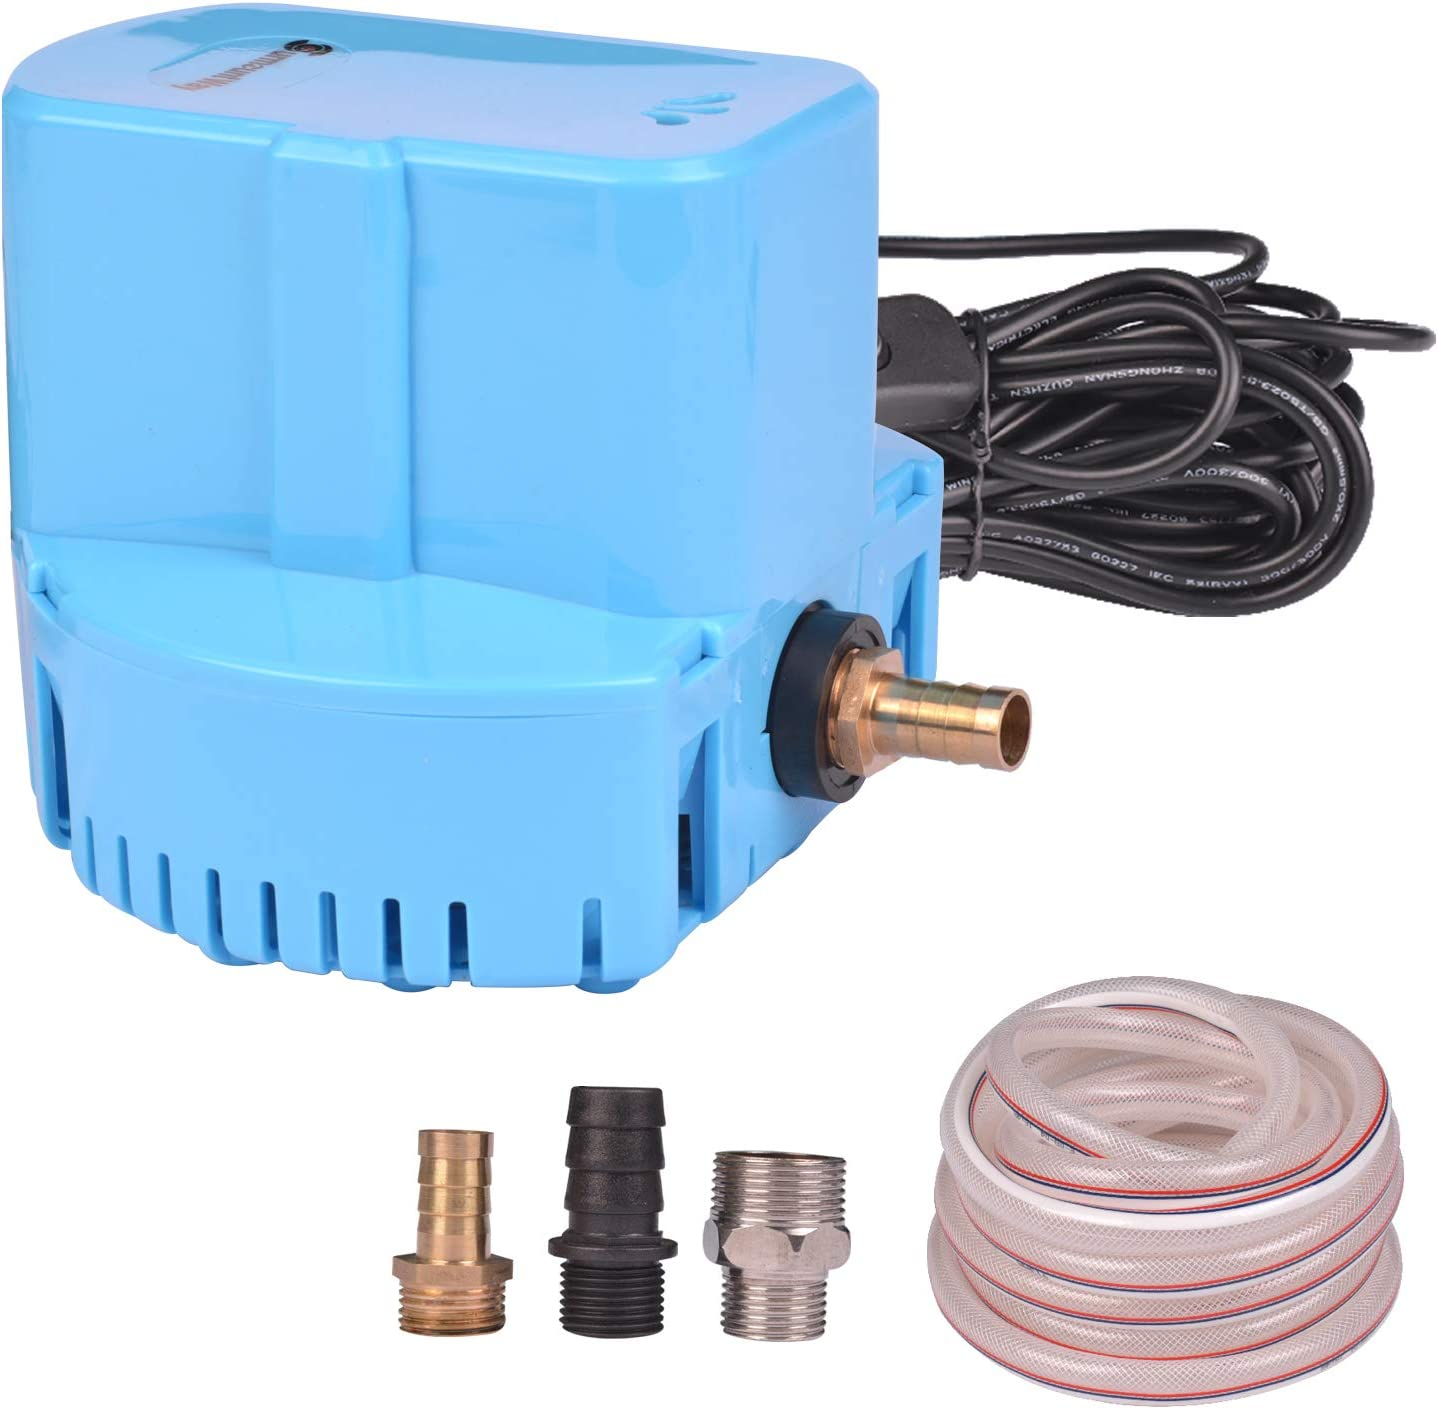 Pool Cover Pump Above Ground Submersible Sump Pump 1200 GPH 1/6 HP 110V Water Removal Drain Pump with 16' Drainage Hose,25' Cord,3 Adapters